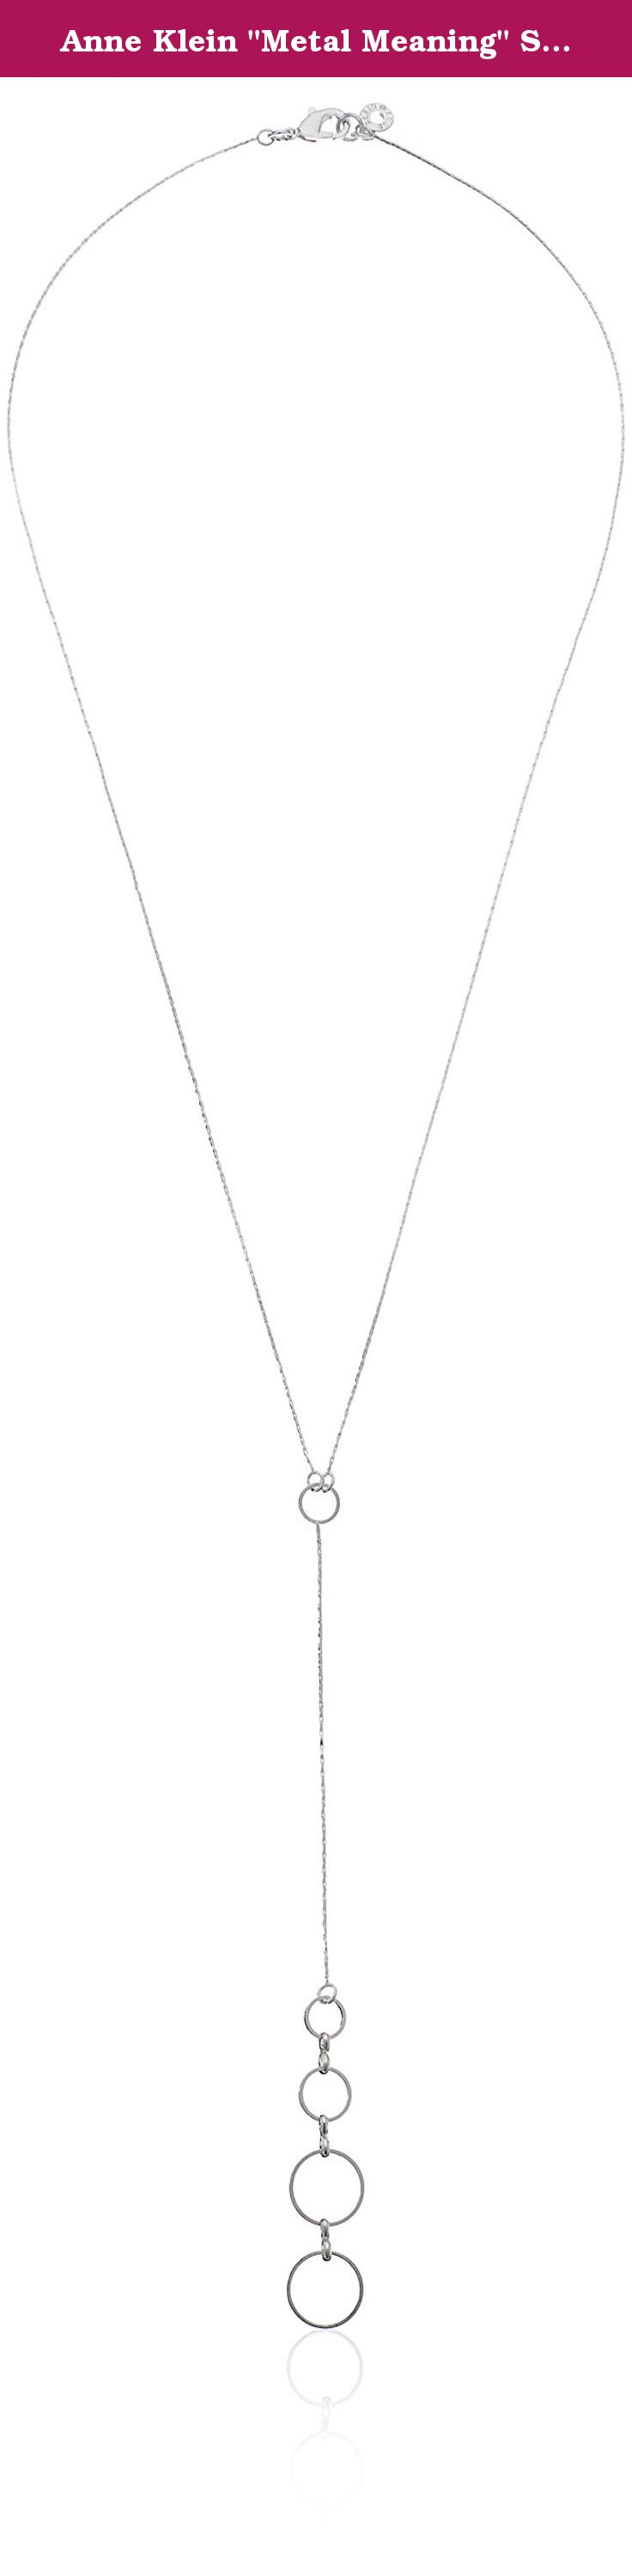 Anne klein metal meaning silver tone double drop open circle anne klein metal meaning silver tone double drop open circle pendant y aloadofball Images